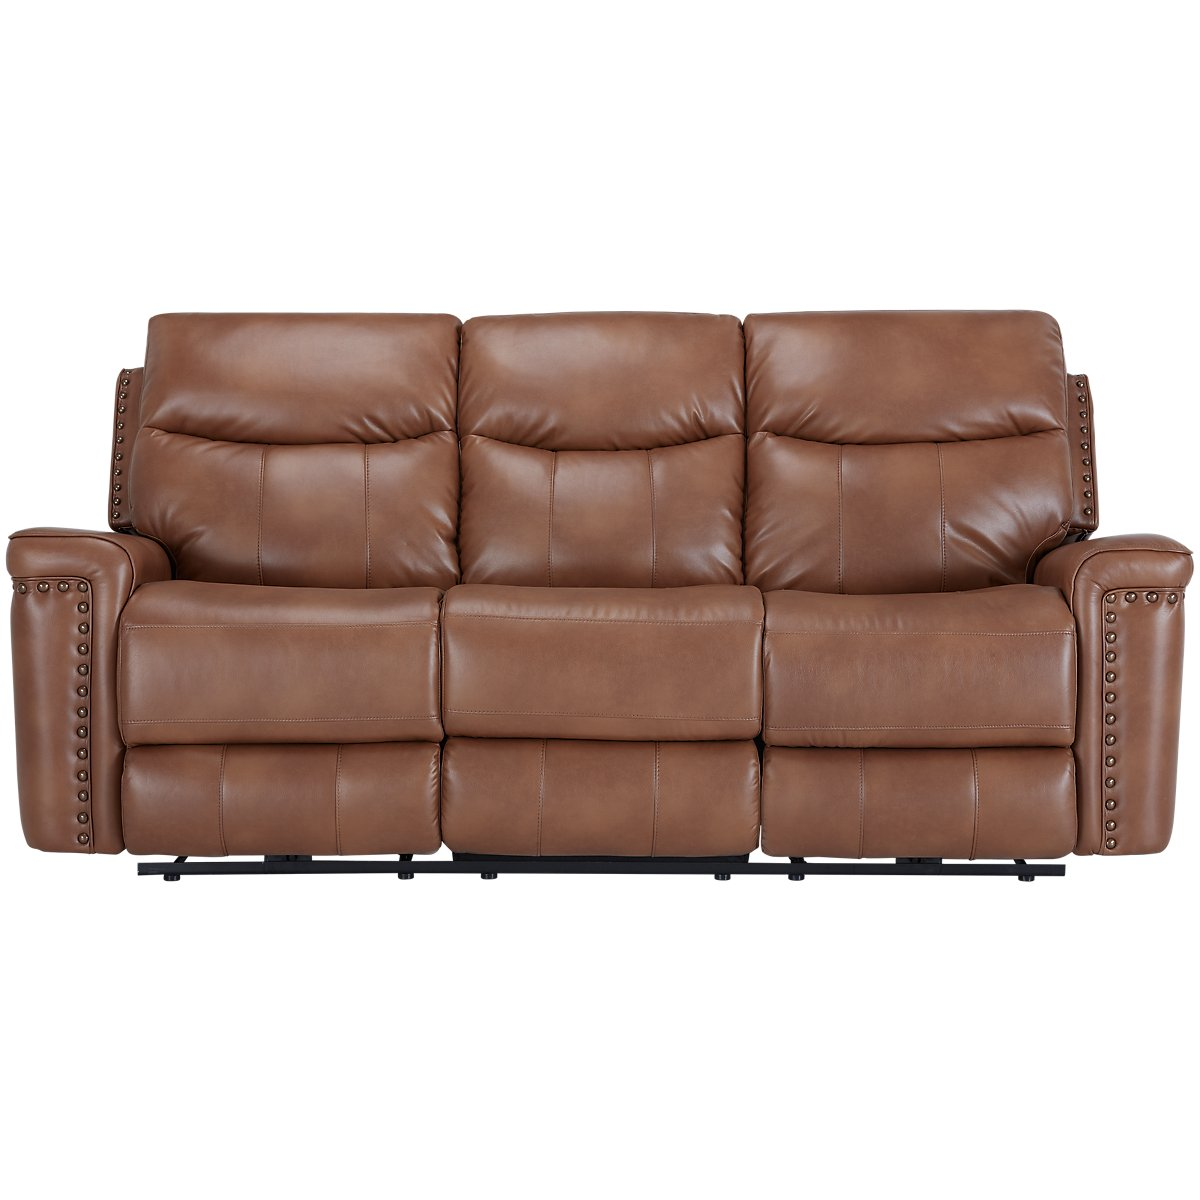 Wallace Medium Brown Microfiber Power Reclining Sofa